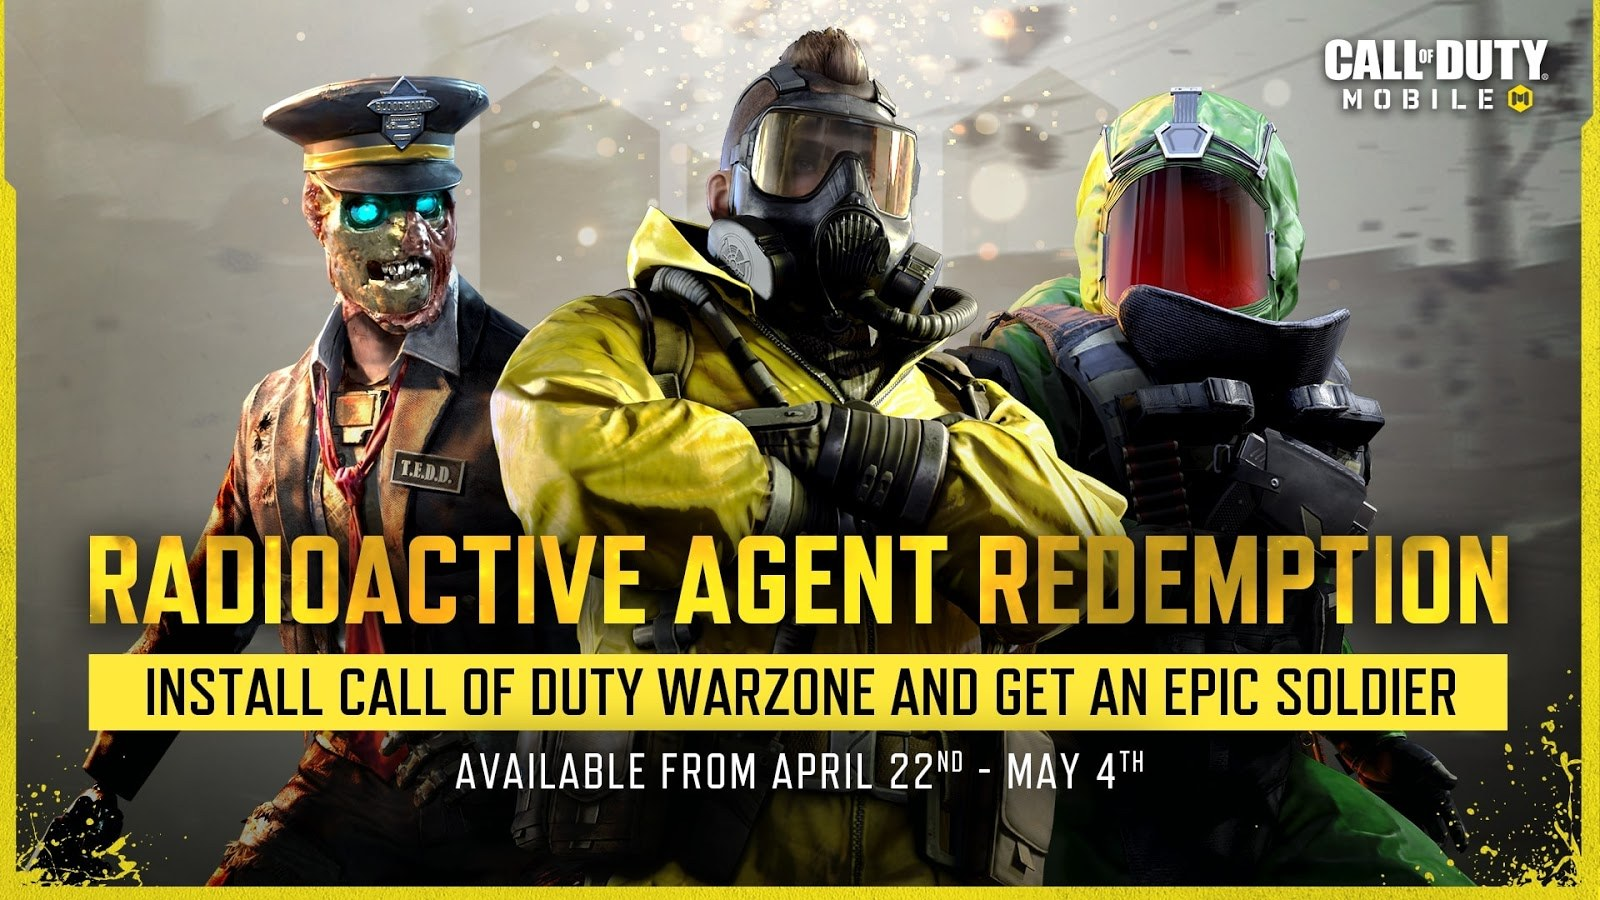 Call of Duty: Mobile Season 3 Introduces Night Mode 2.0, Radioactive Agent Redemption, And More